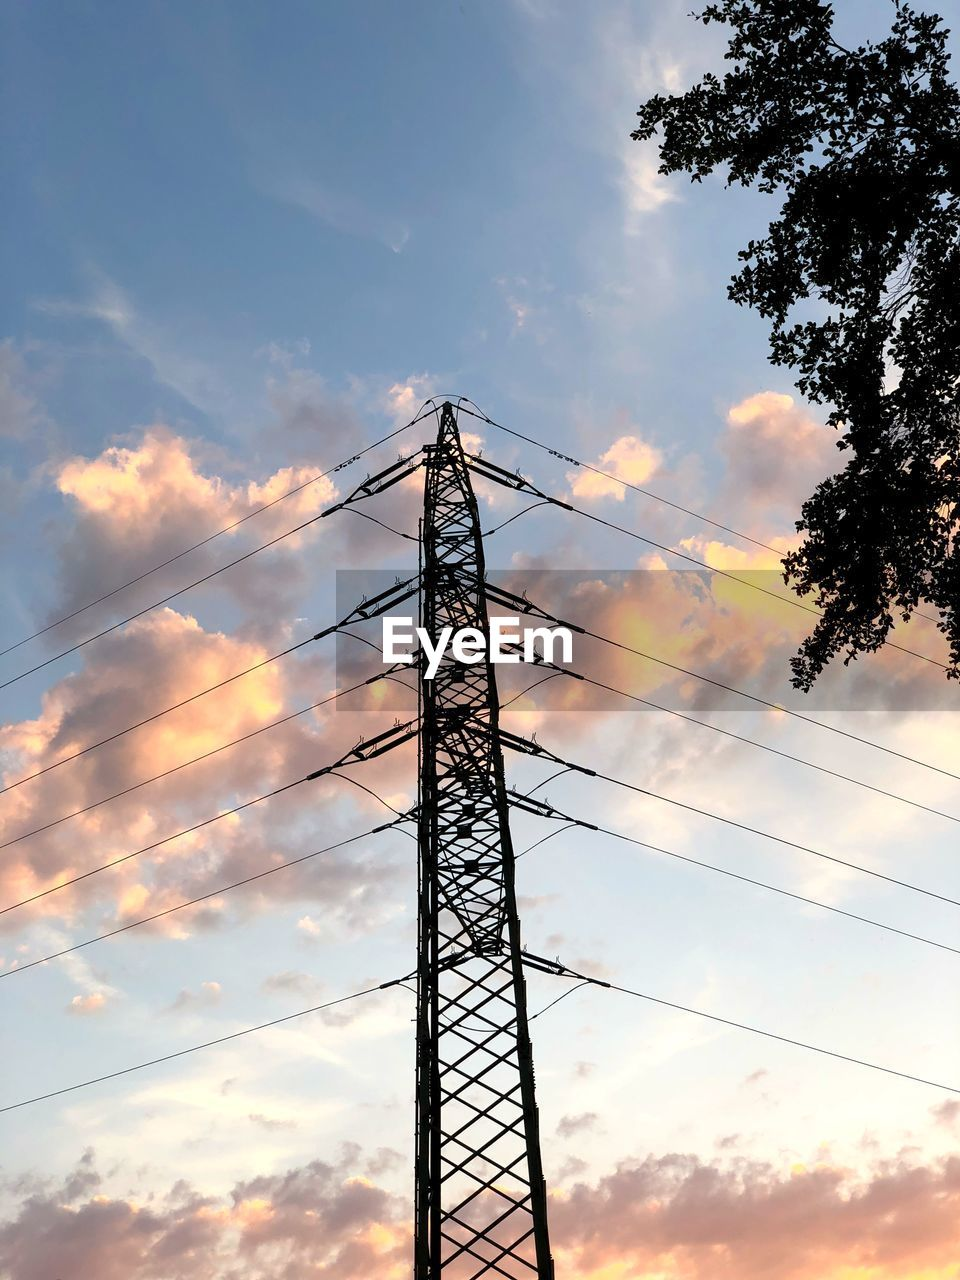 cloud - sky, sky, technology, electricity, sunset, low angle view, electricity pylon, power supply, nature, power line, no people, connection, silhouette, cable, fuel and power generation, outdoors, tree, architecture, metal, built structure, electrical equipment